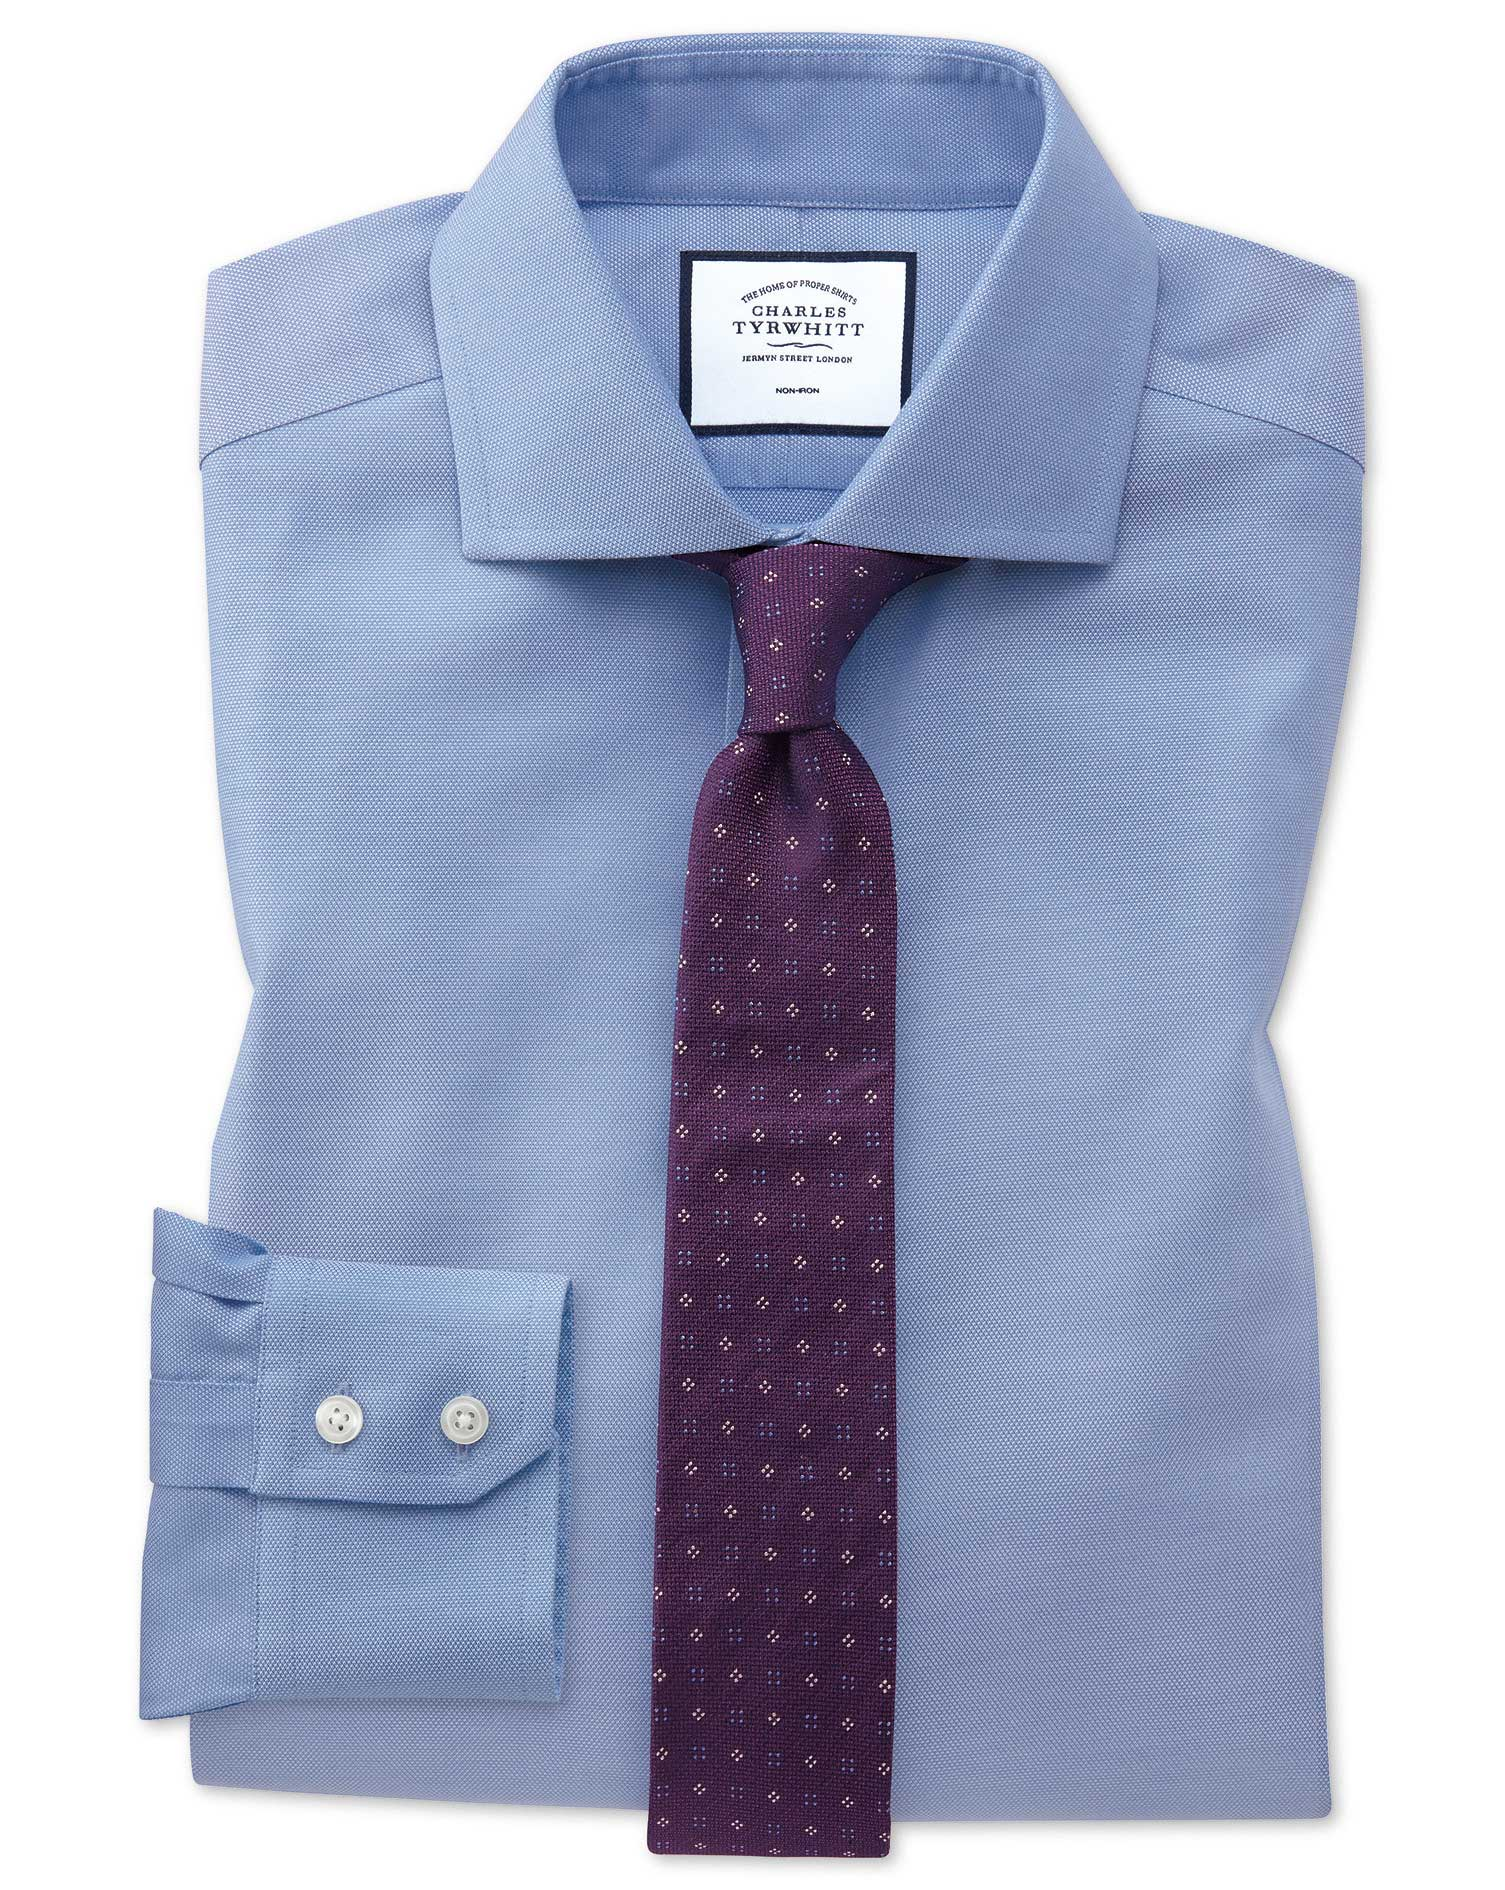 Extra Slim Fit Non-Iron Mid-Blue Oxford Stretch Cotton Formal Shirt Single Cuff Size 15/33 by Charle